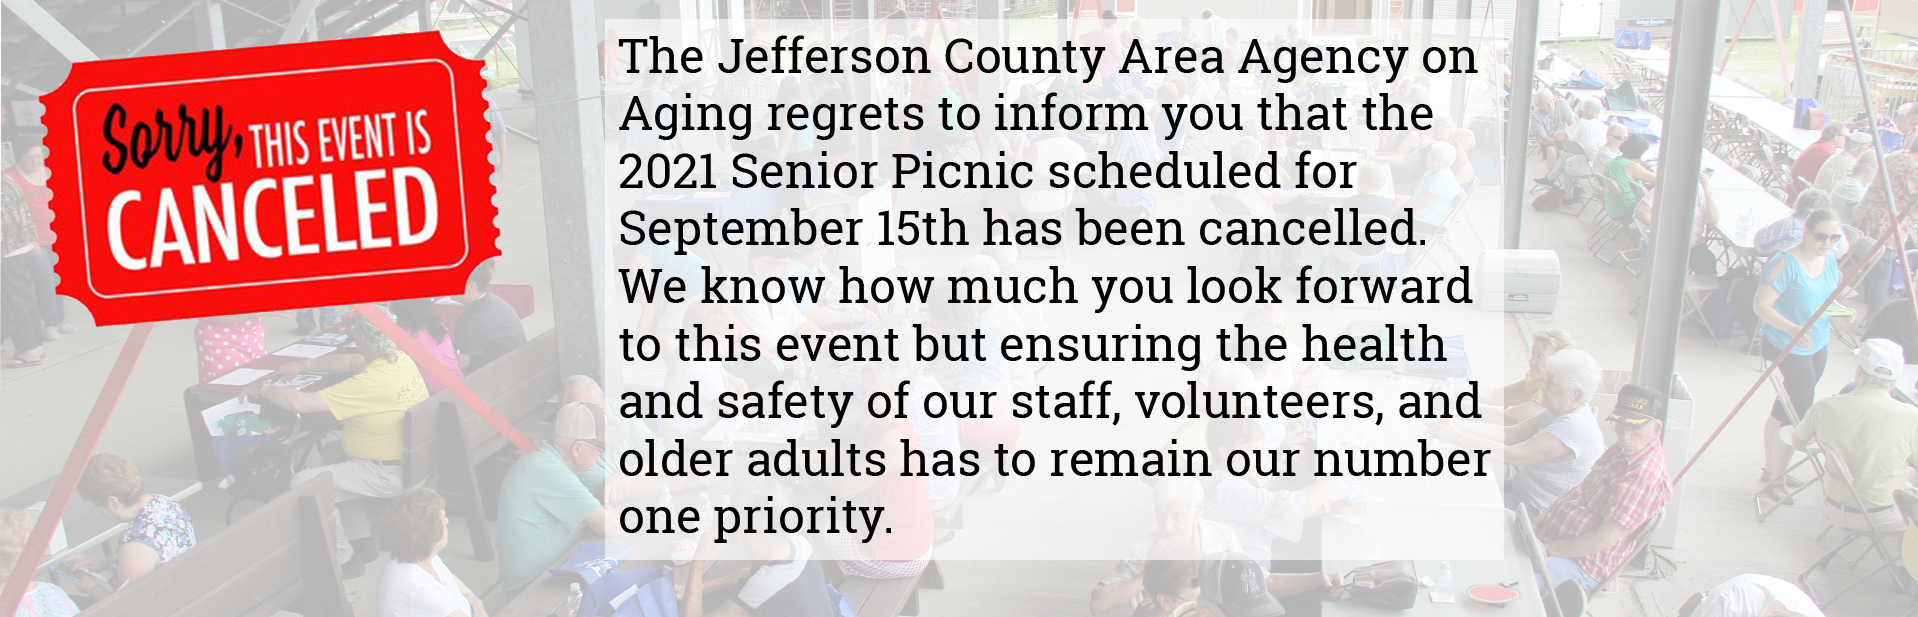 The Jefferson County Area Agency on Aging regrets to inform you that the 2021 Senior Picnic scheduled for September 15th has been cancelled. We know how much you look forward to this event but ensuring the health and safety of our staff, volunteers, and older adults has to remain our number one priority. Our senior centers remain open with meals and activities for you to enjoy.